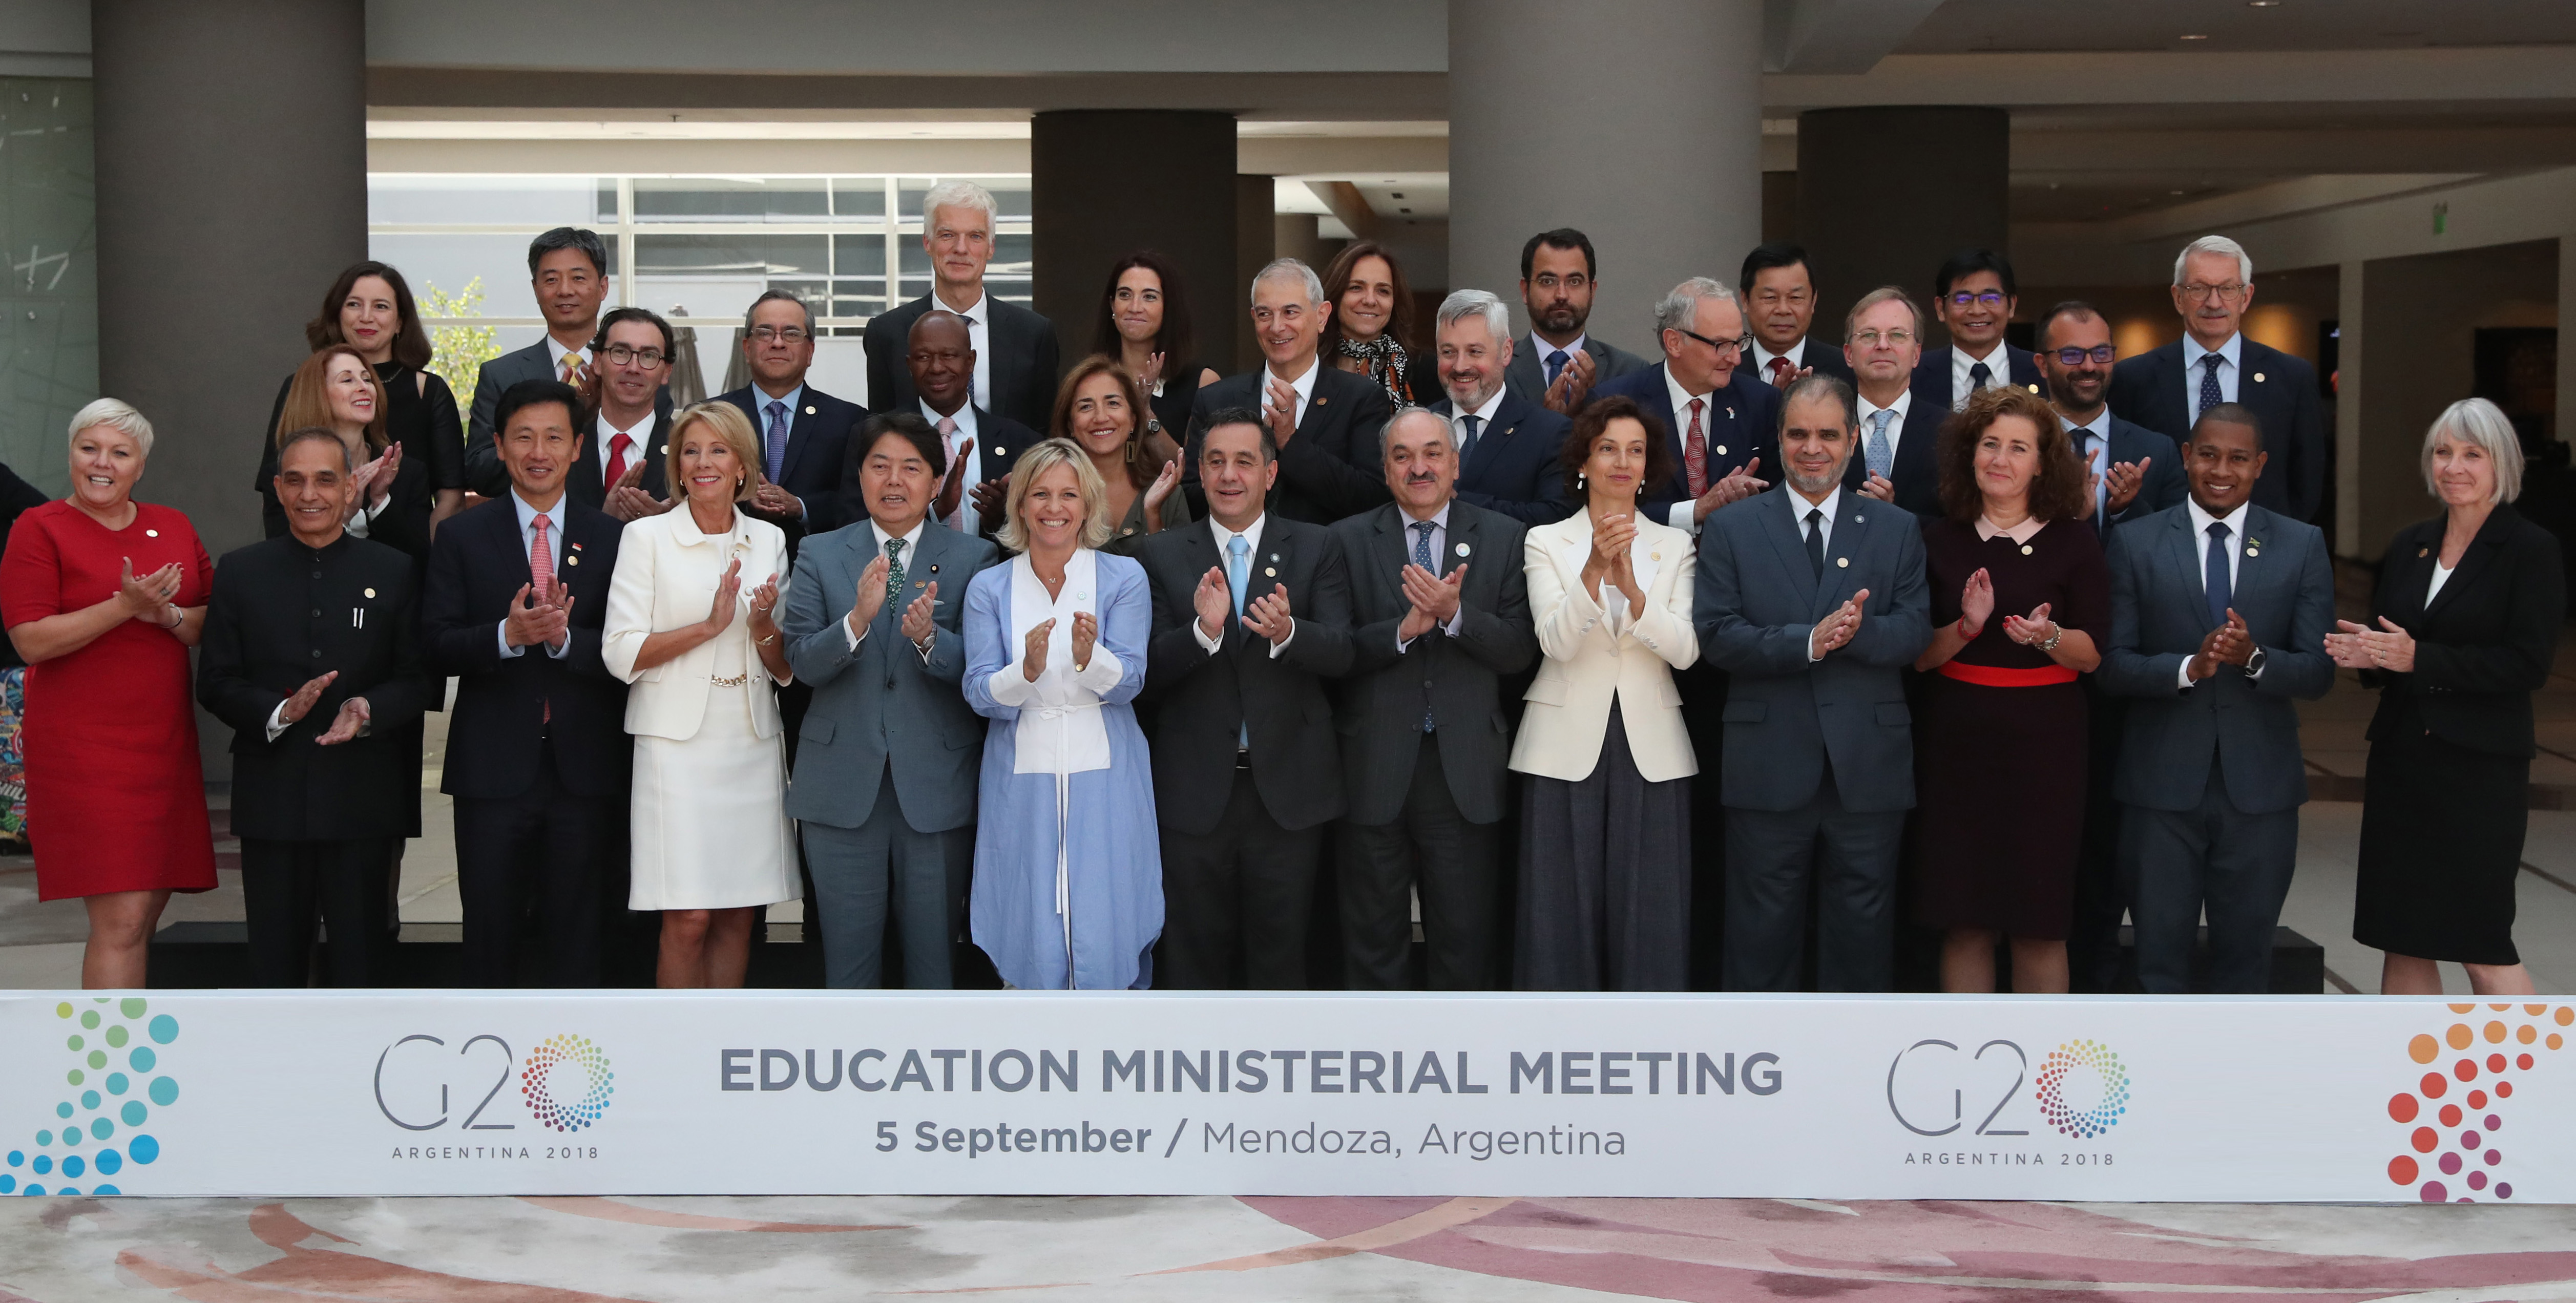 G20 Education Ministerial Meeting 5 September 2018 Mendoza Argentina